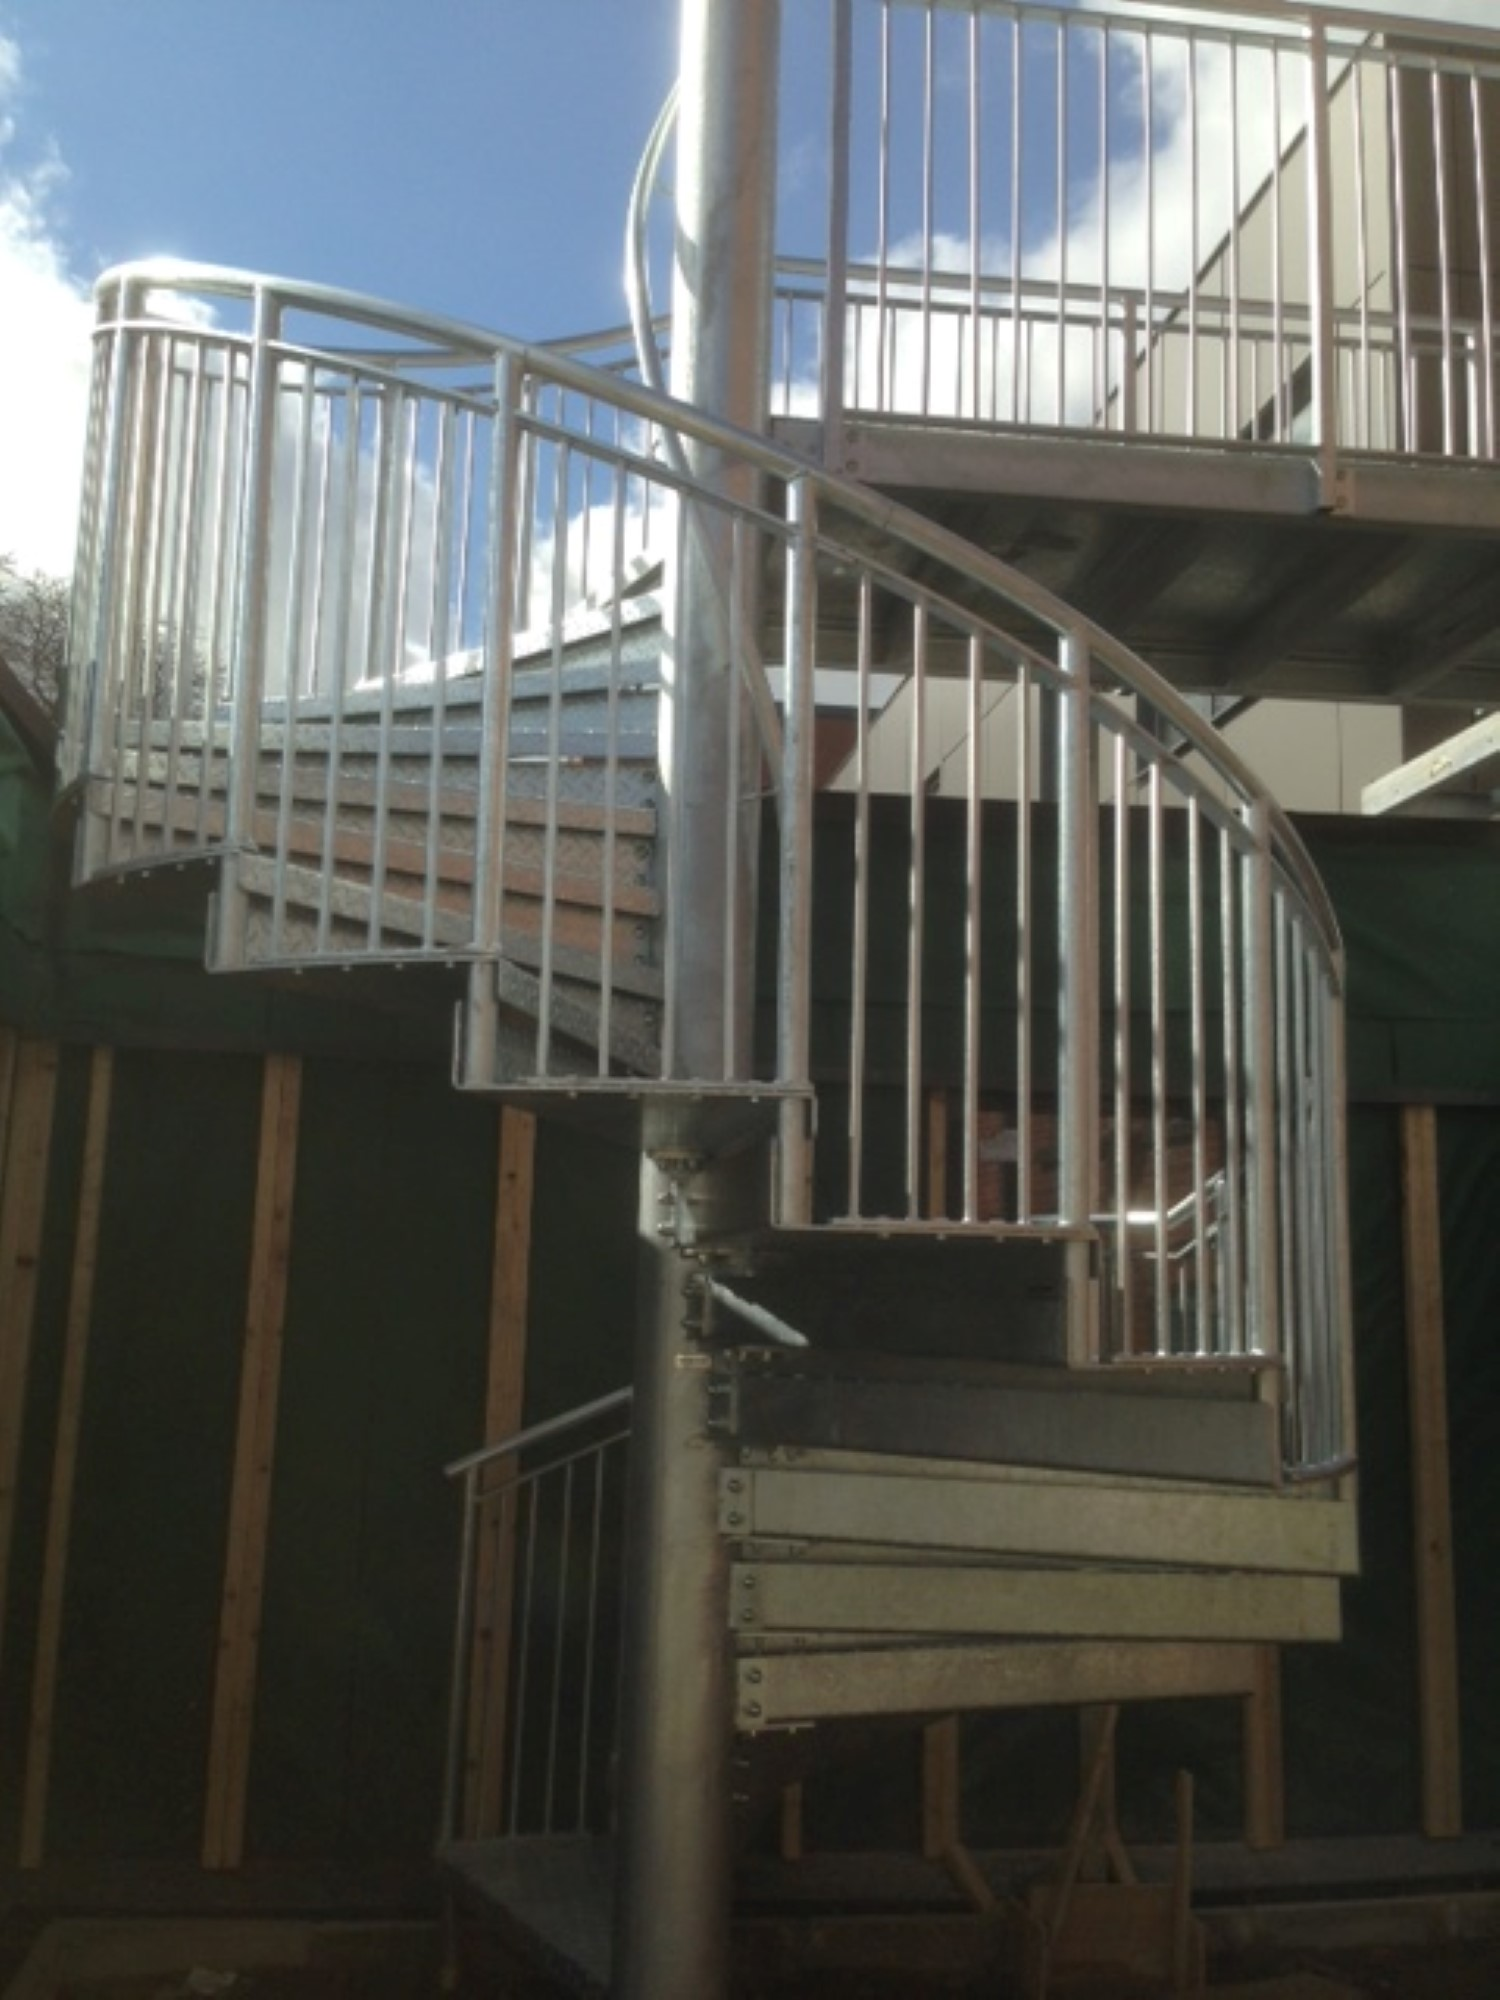 Modern spiral staircase manufactured by Bradfabs